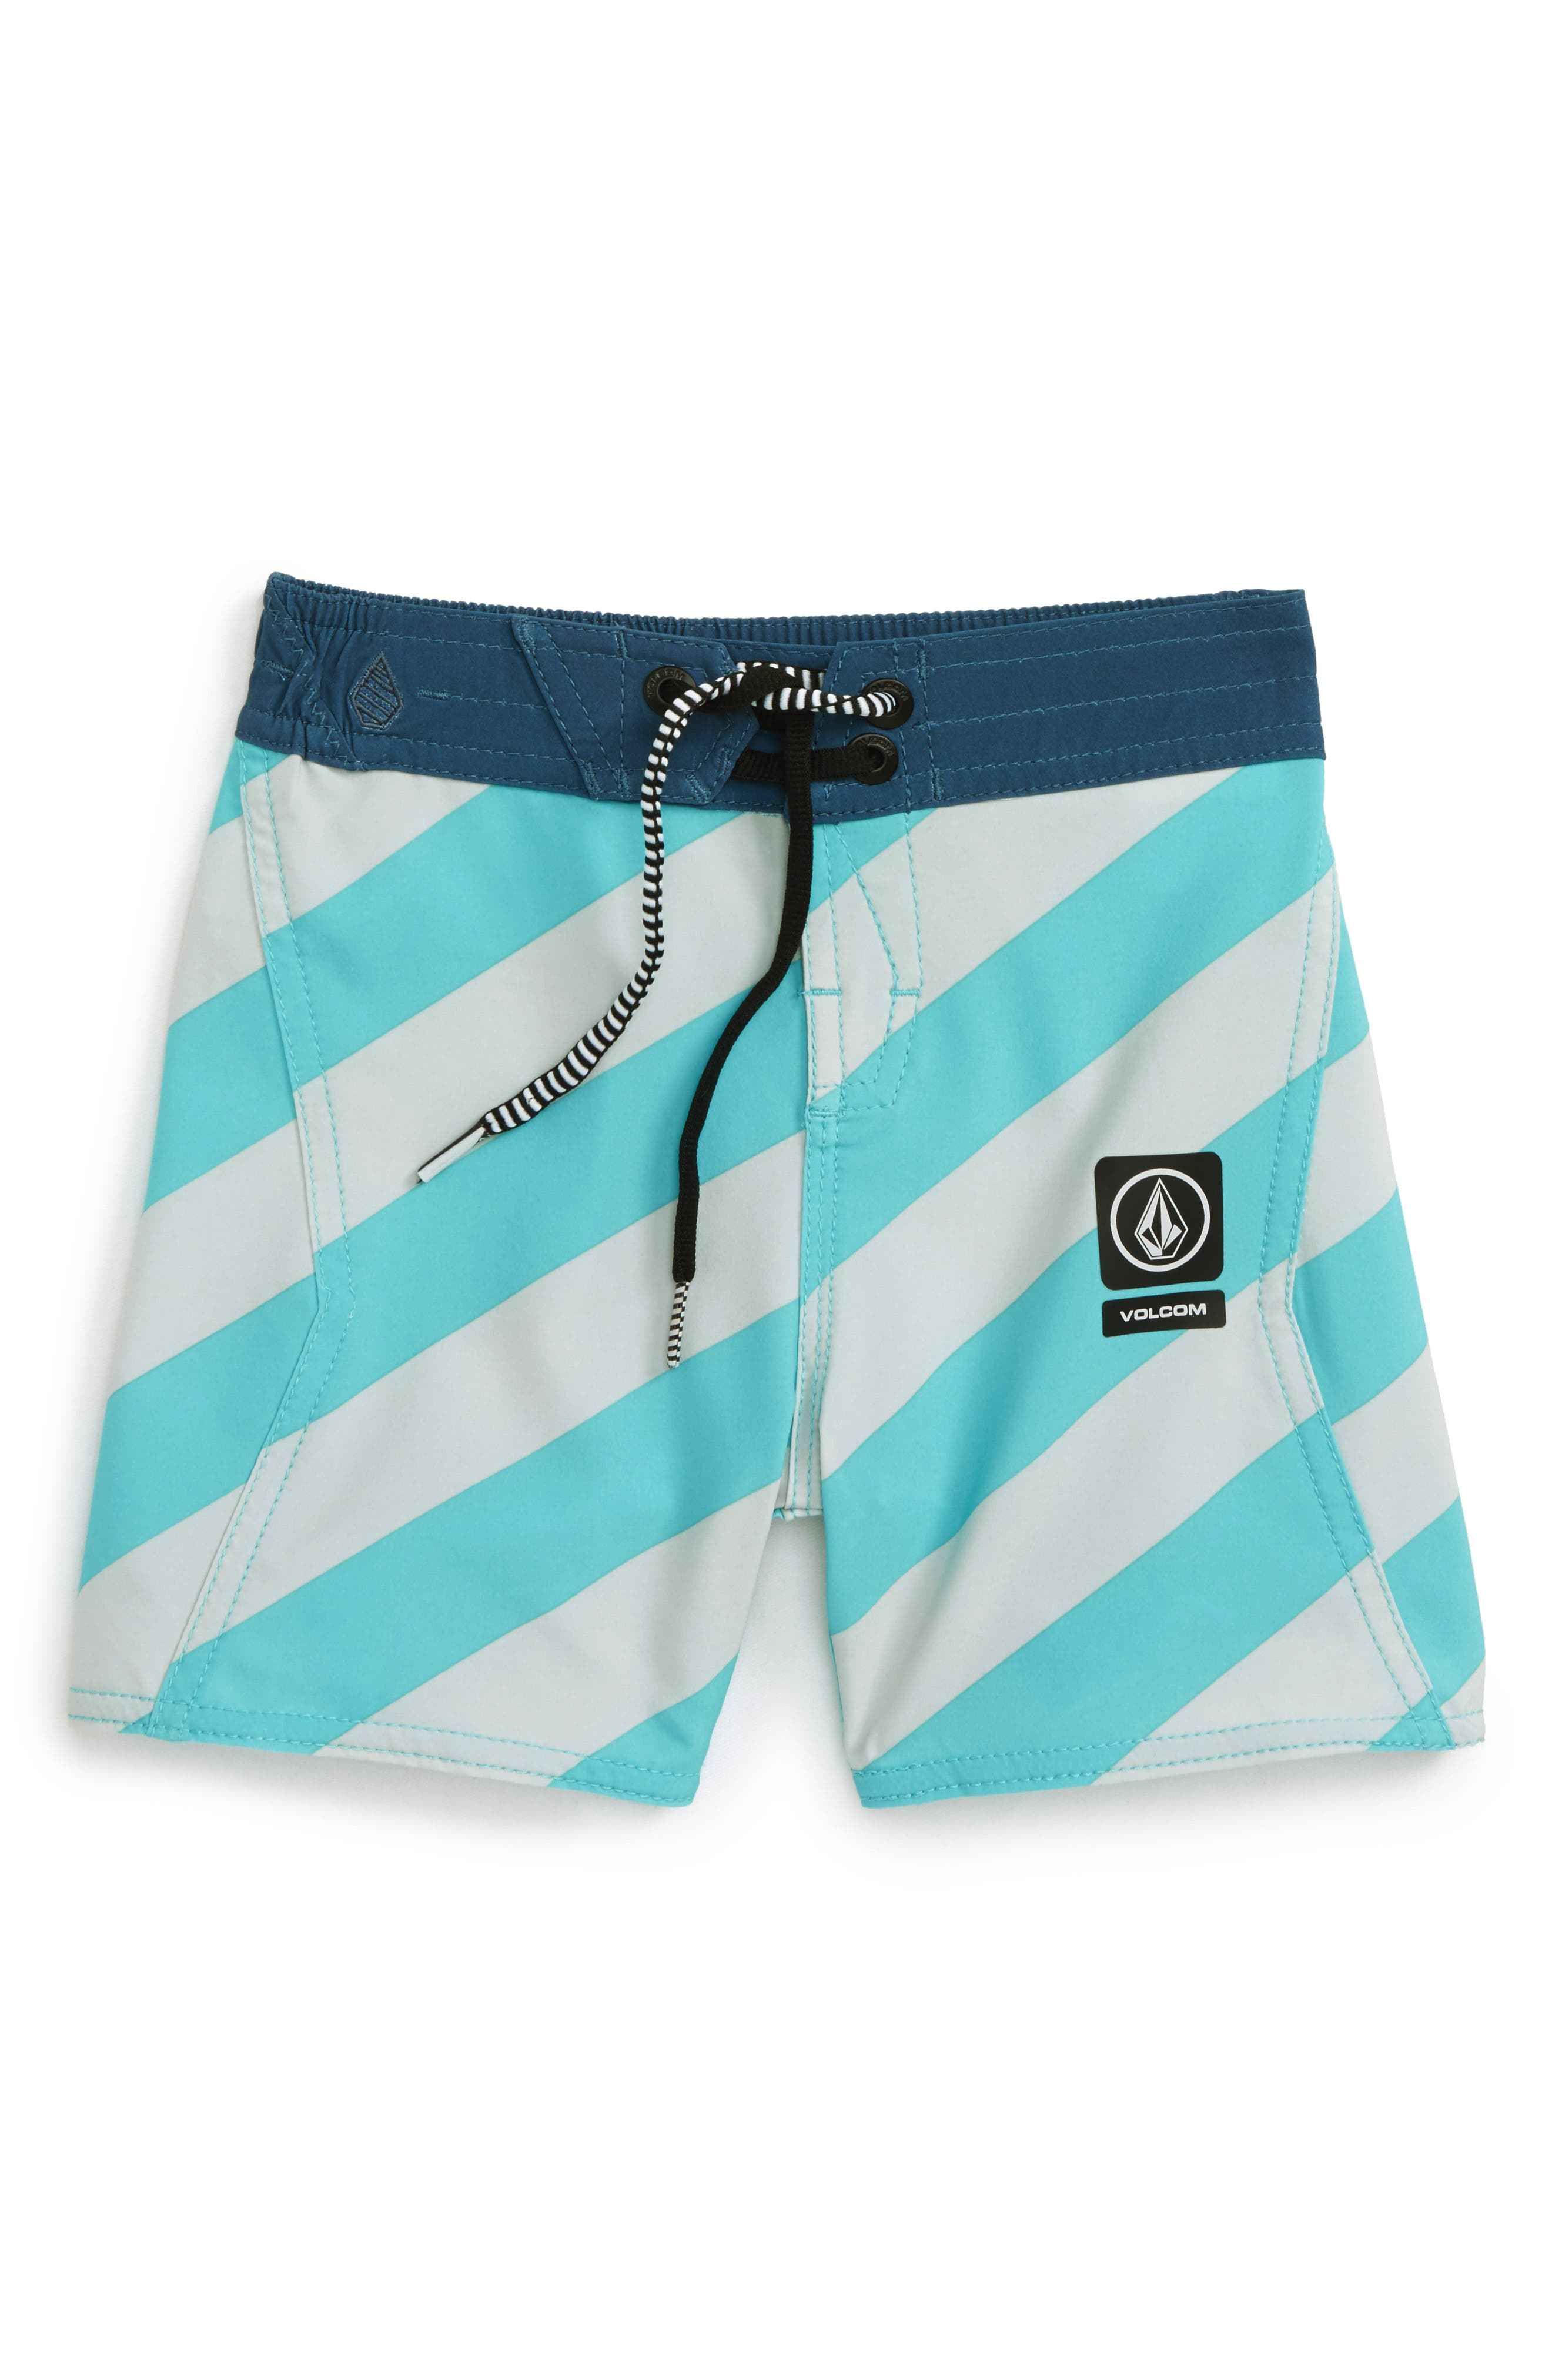 Stripey Jammer Board Shorts,                         Main,                         color, 440